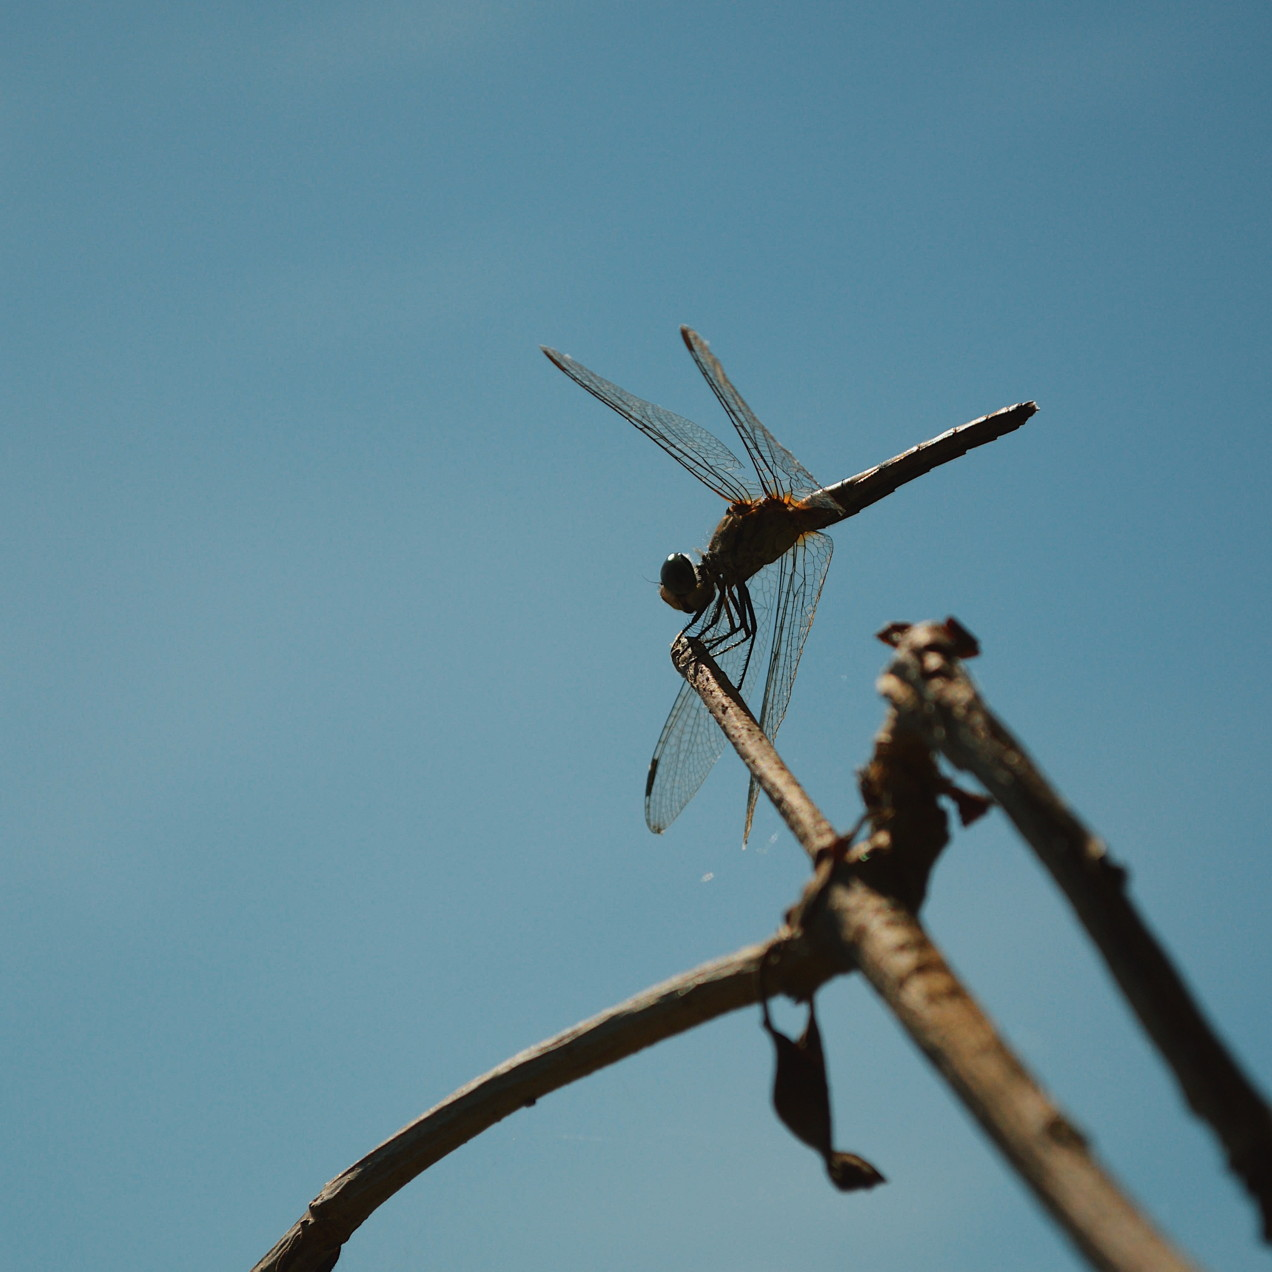 Dragonfly perched on a branch. Photo by Reghan Skerry.